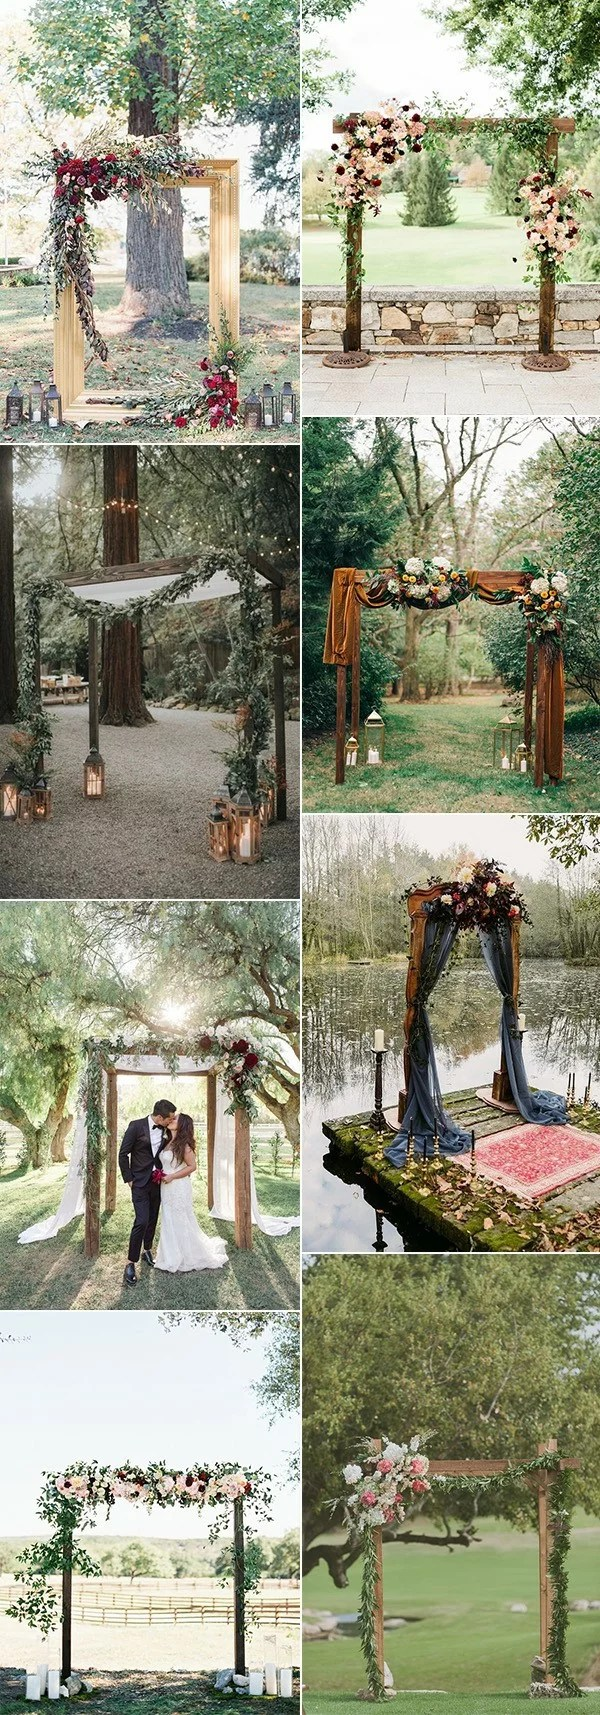 20 Best Outdoor Fall Wedding Arches For 2021 Emmalovesweddings